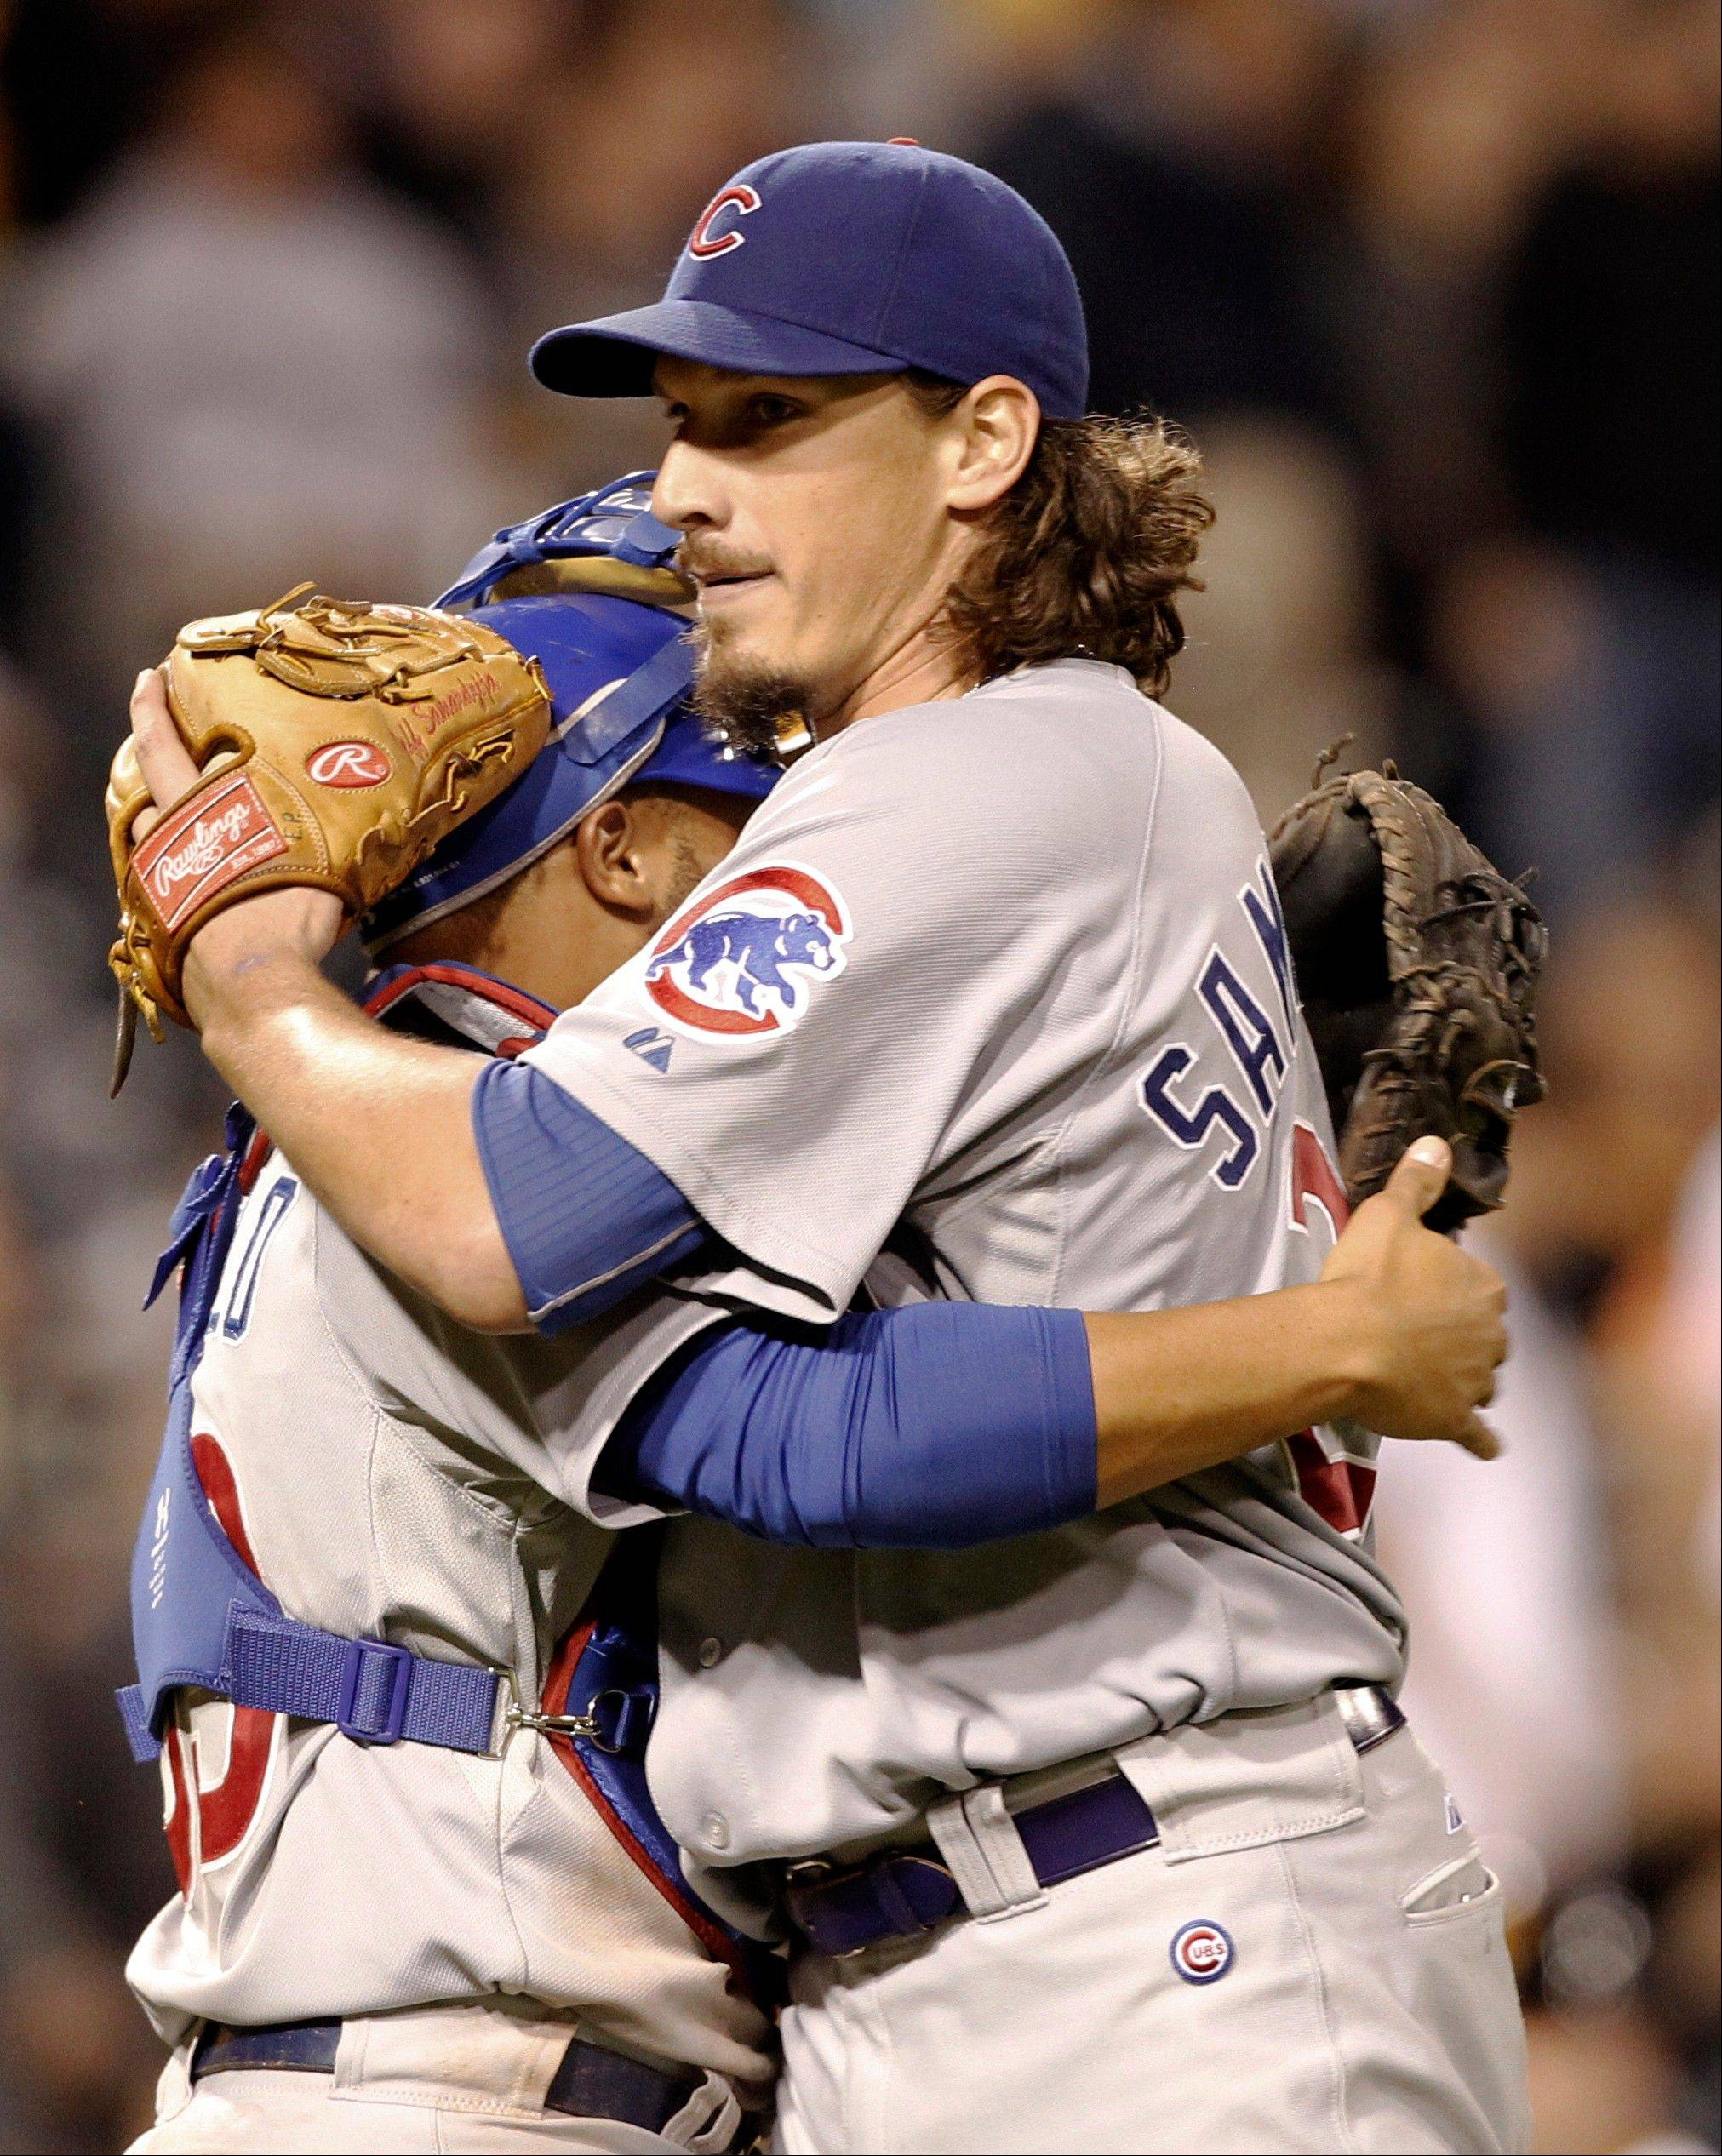 Chicago Cubs starting pitcher Jeff Samardzija, right, hugs catcher Welington Castillo after a baseball game against the Pittsburgh Pirates in September in Pittsburgh. Samardzija threw a complete game as the Cubs beat the Pirates 4-3.